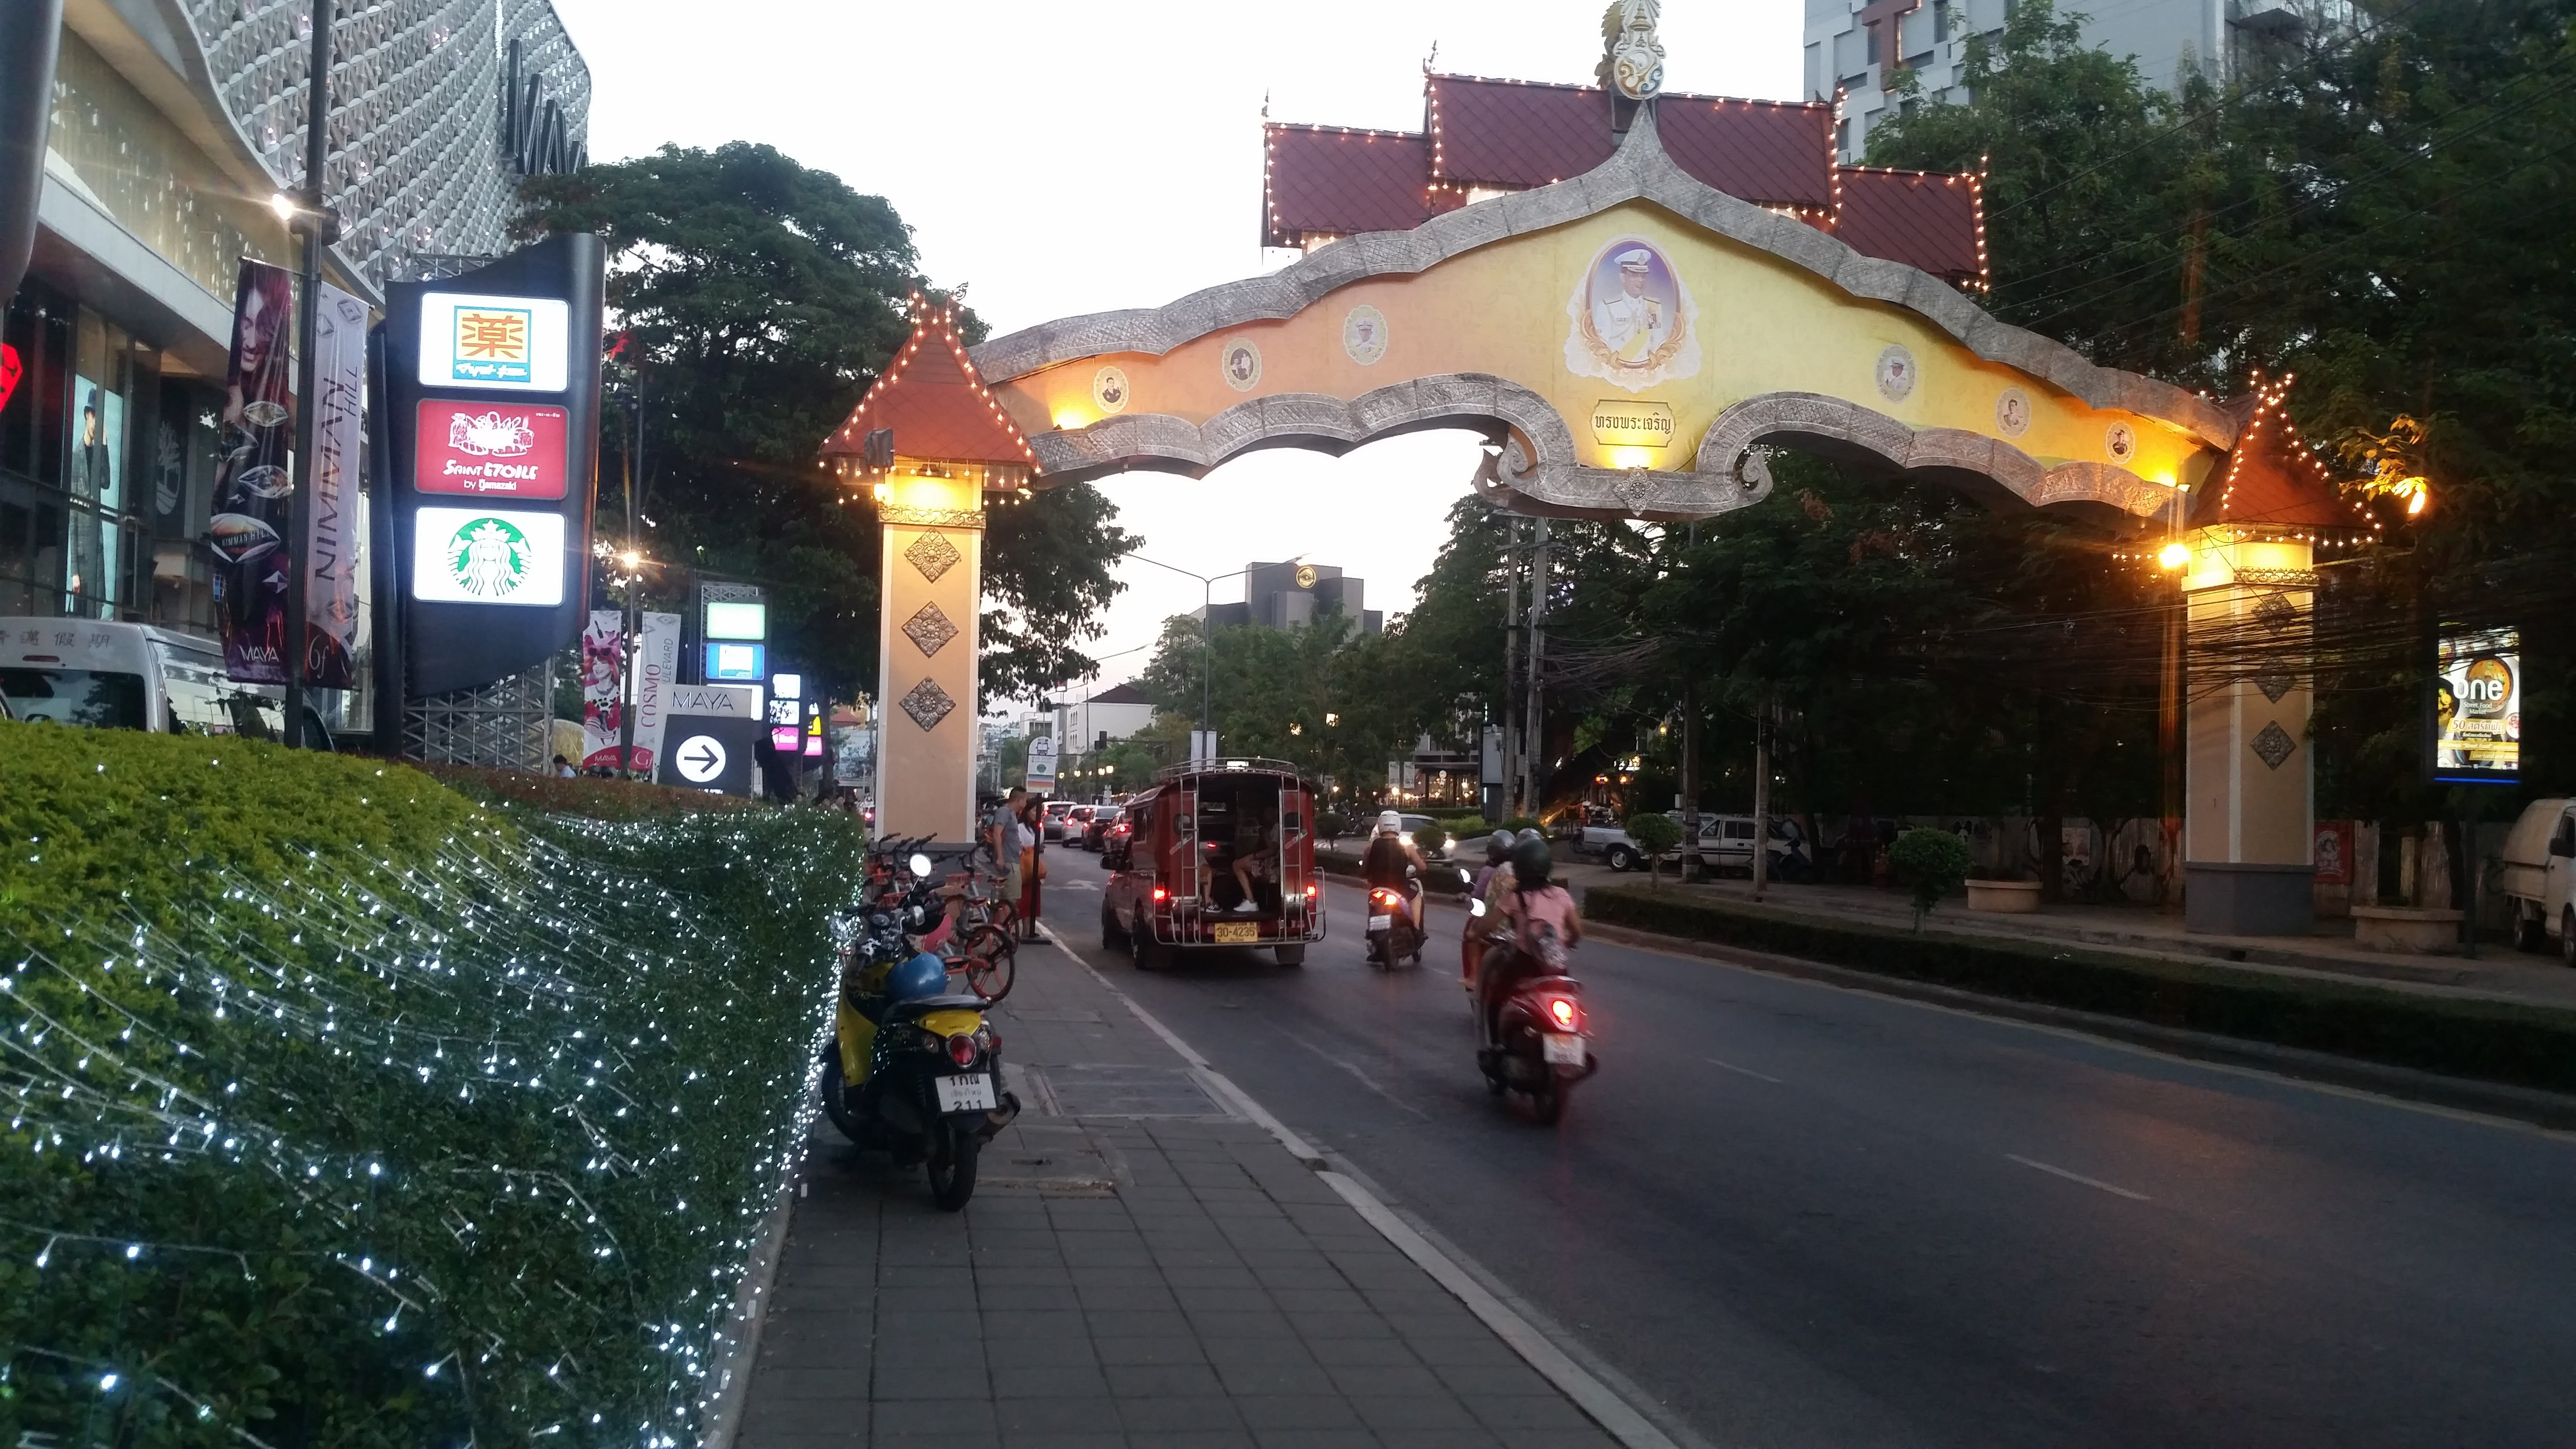 These Red Trucks are called Songthaew, and they transport people like a taxi.